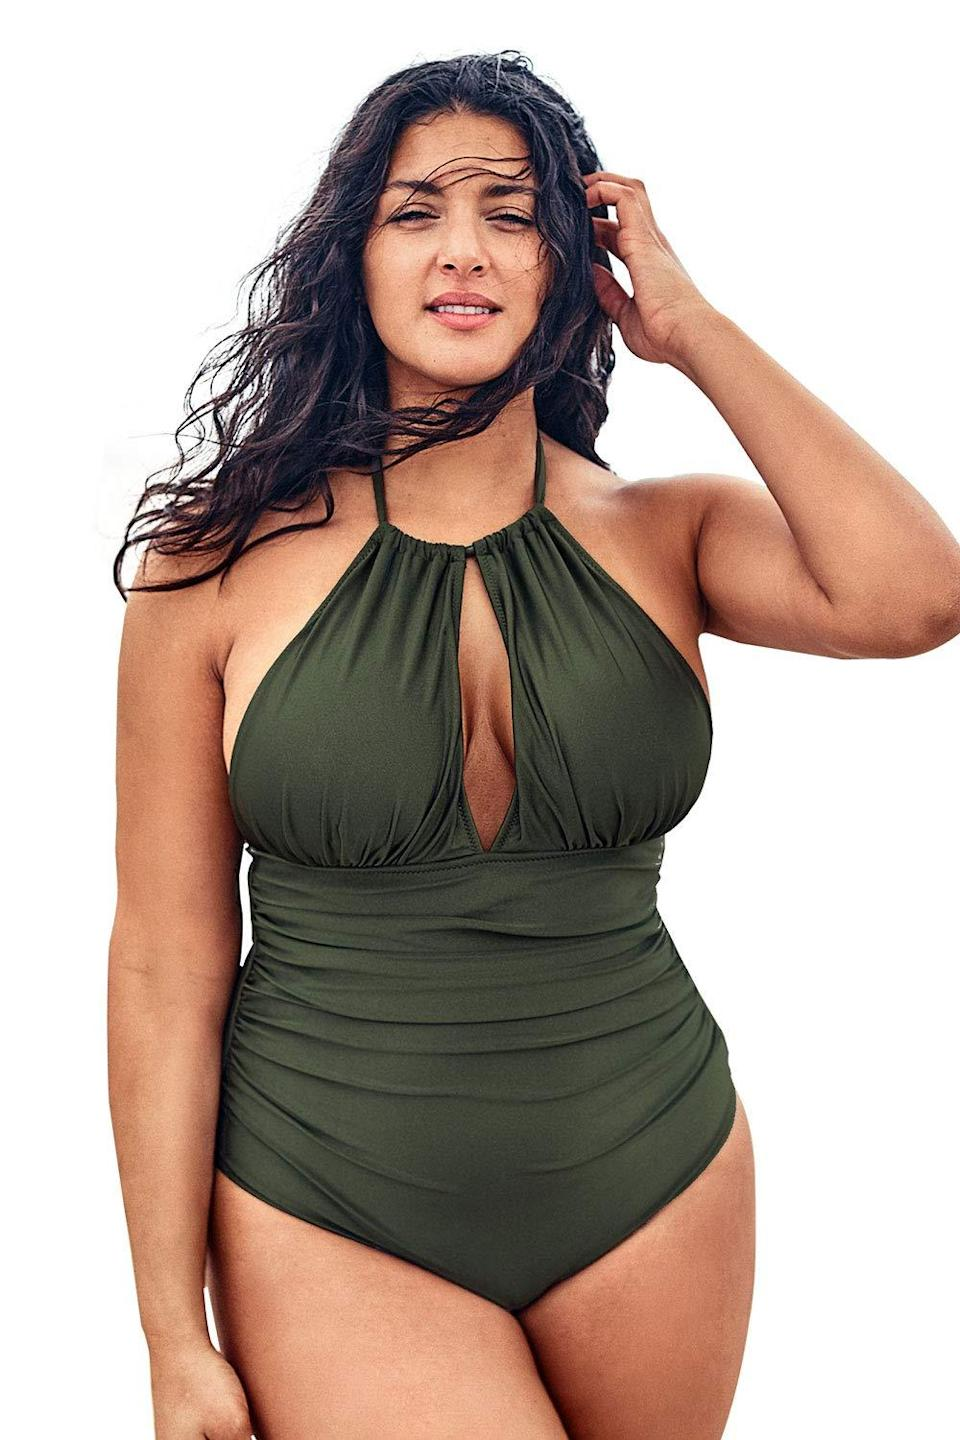 """<strong><em>Cupshe Keyhole Halter Swimsuit</em></strong><br><br>This plus-size number is simple and stunning, with flattering shirring and a keyhole neckline for maximum va-va-voom. """"As a plus-size woman it can be hard to find a suit that fits,"""" wrote reviewer Samantha. """"I'm 300 lbs and have a 44H bra size. It's not super supportive but it still works well. The cups are removable thru a little hole on the inside so if you want to take them out and possibly replace them that's totally an option.""""<br><br><strong>Cupshe</strong> Keyhole Halter Swimsuit, $, available at <a href=""""https://amzn.to/3hwiyr9"""" rel=""""nofollow noopener"""" target=""""_blank"""" data-ylk=""""slk:Amazon"""" class=""""link rapid-noclick-resp"""">Amazon</a>"""